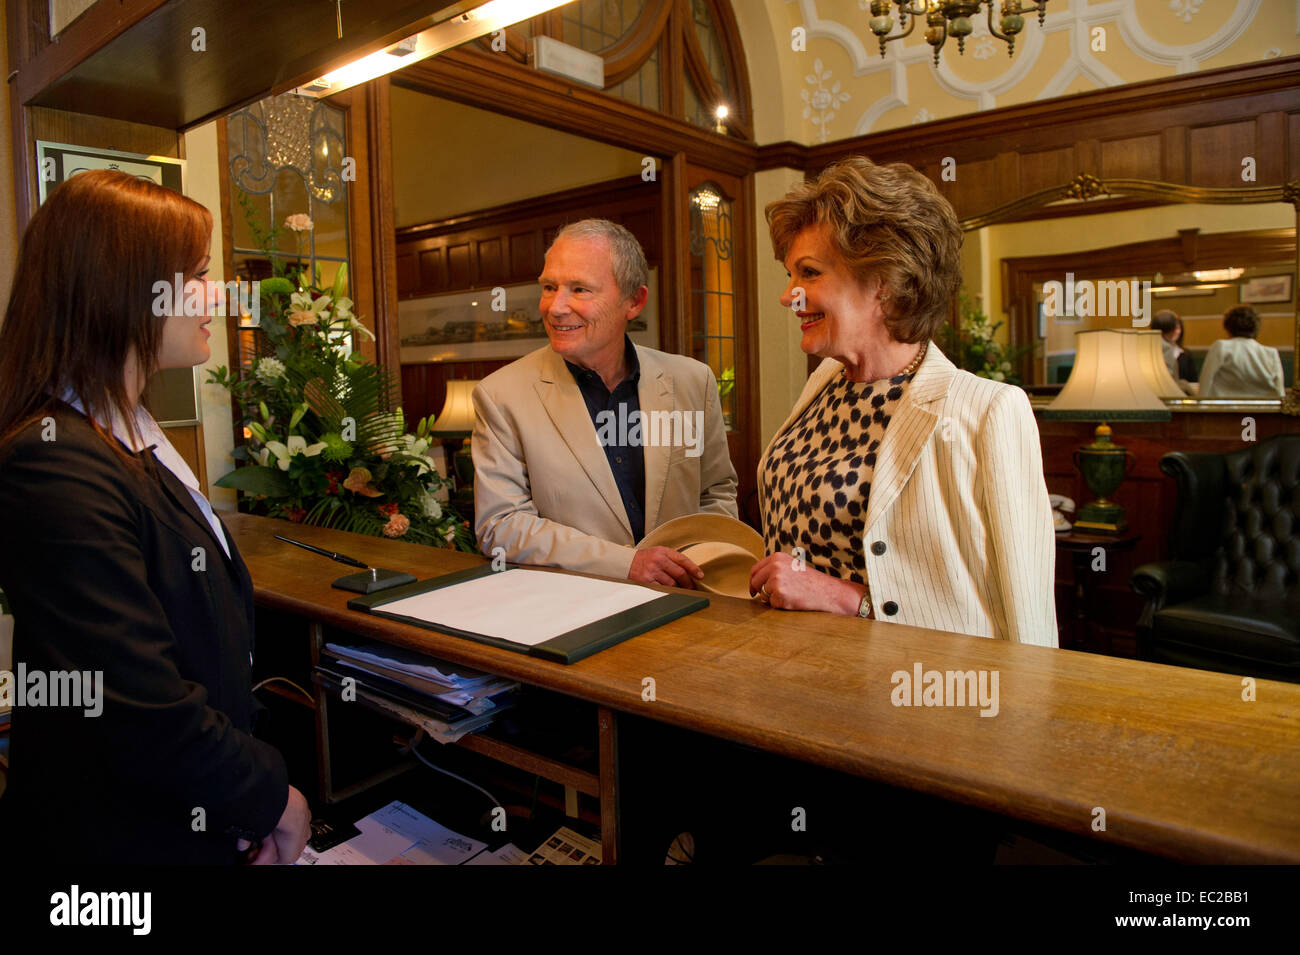 An older couple checking into a hotel - Stock Image